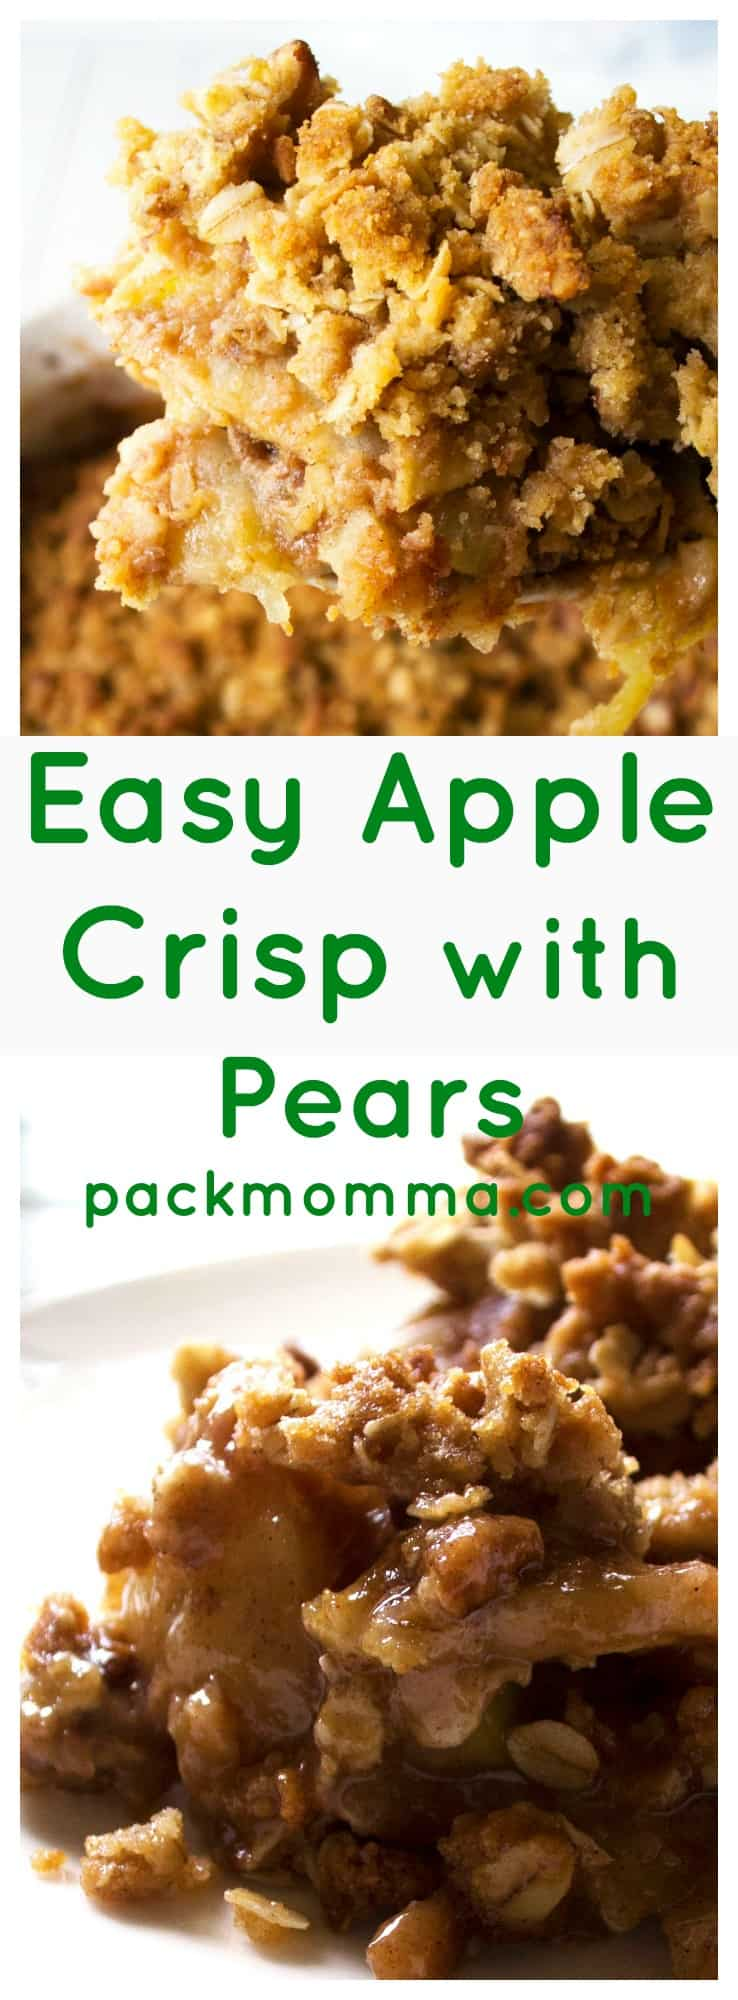 Easy Apple Pear Crisp | Warm your belly and bring a smile to your face with this delicious recipe for Easy Apple Pear Crisp. Enjoy a new twist on a classic favorite dessert. | https://www.packmomma.com